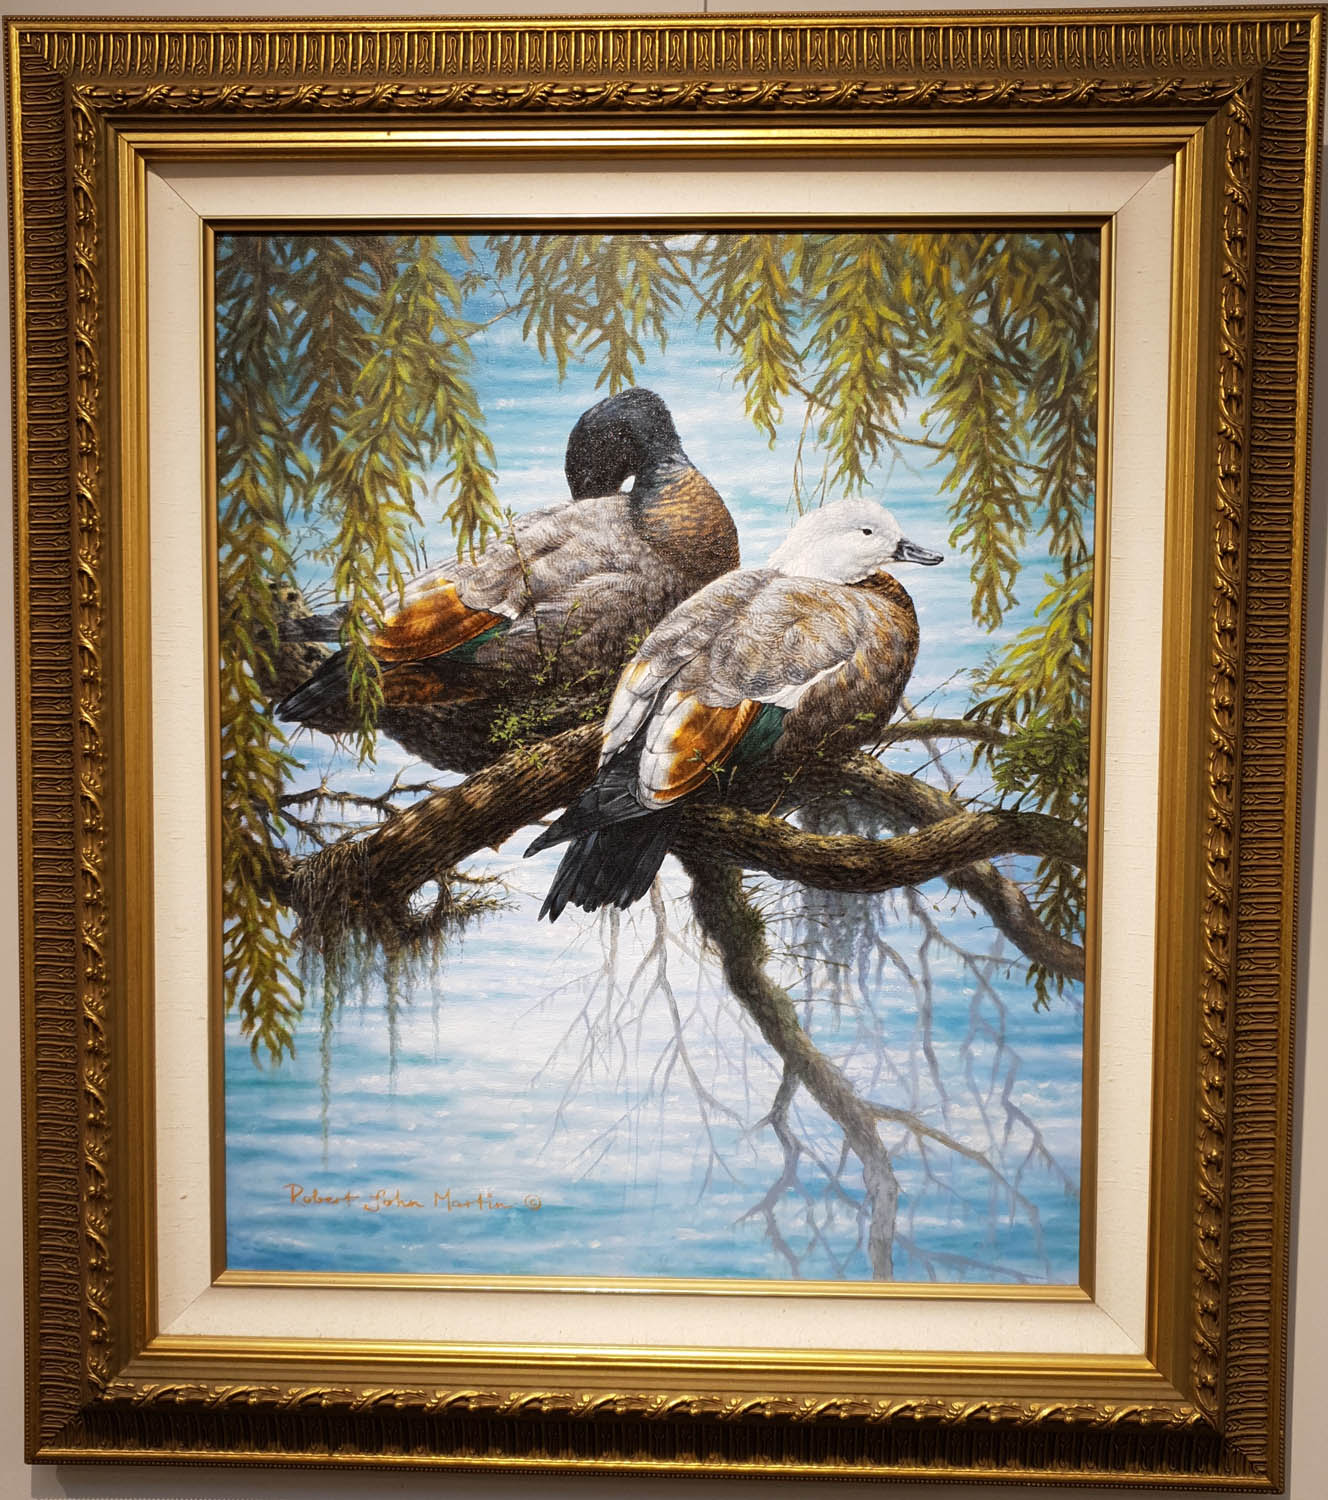 Paradise Ducks Robert Martin Original Oil Painting Windsor Gallery